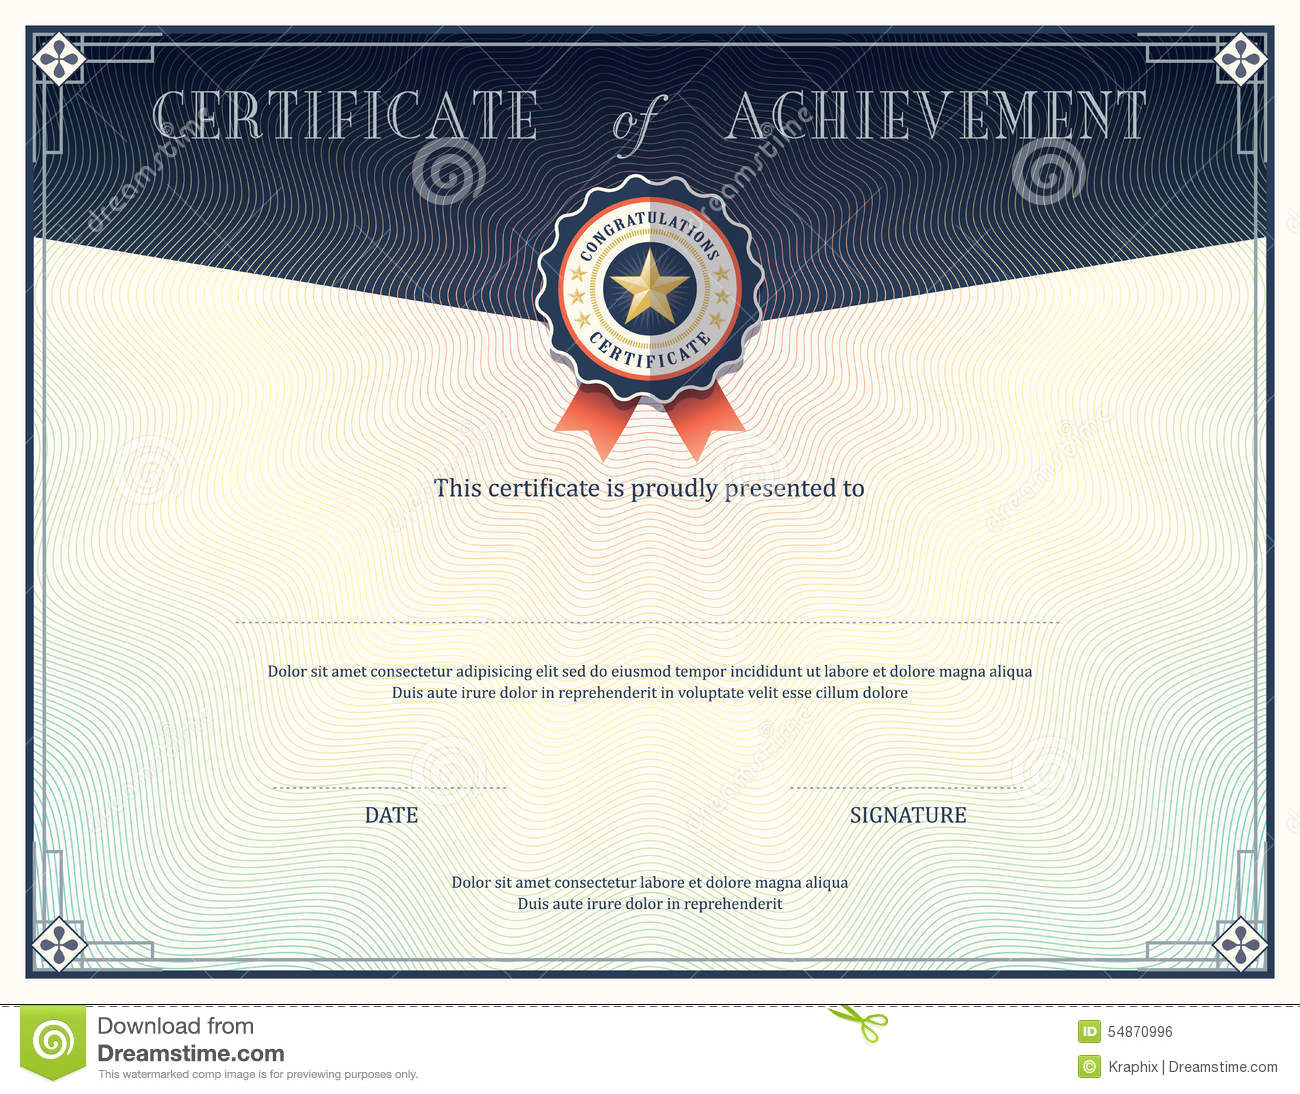 Certificate Of Achievement Design Template  Free Certificate Of Achievement